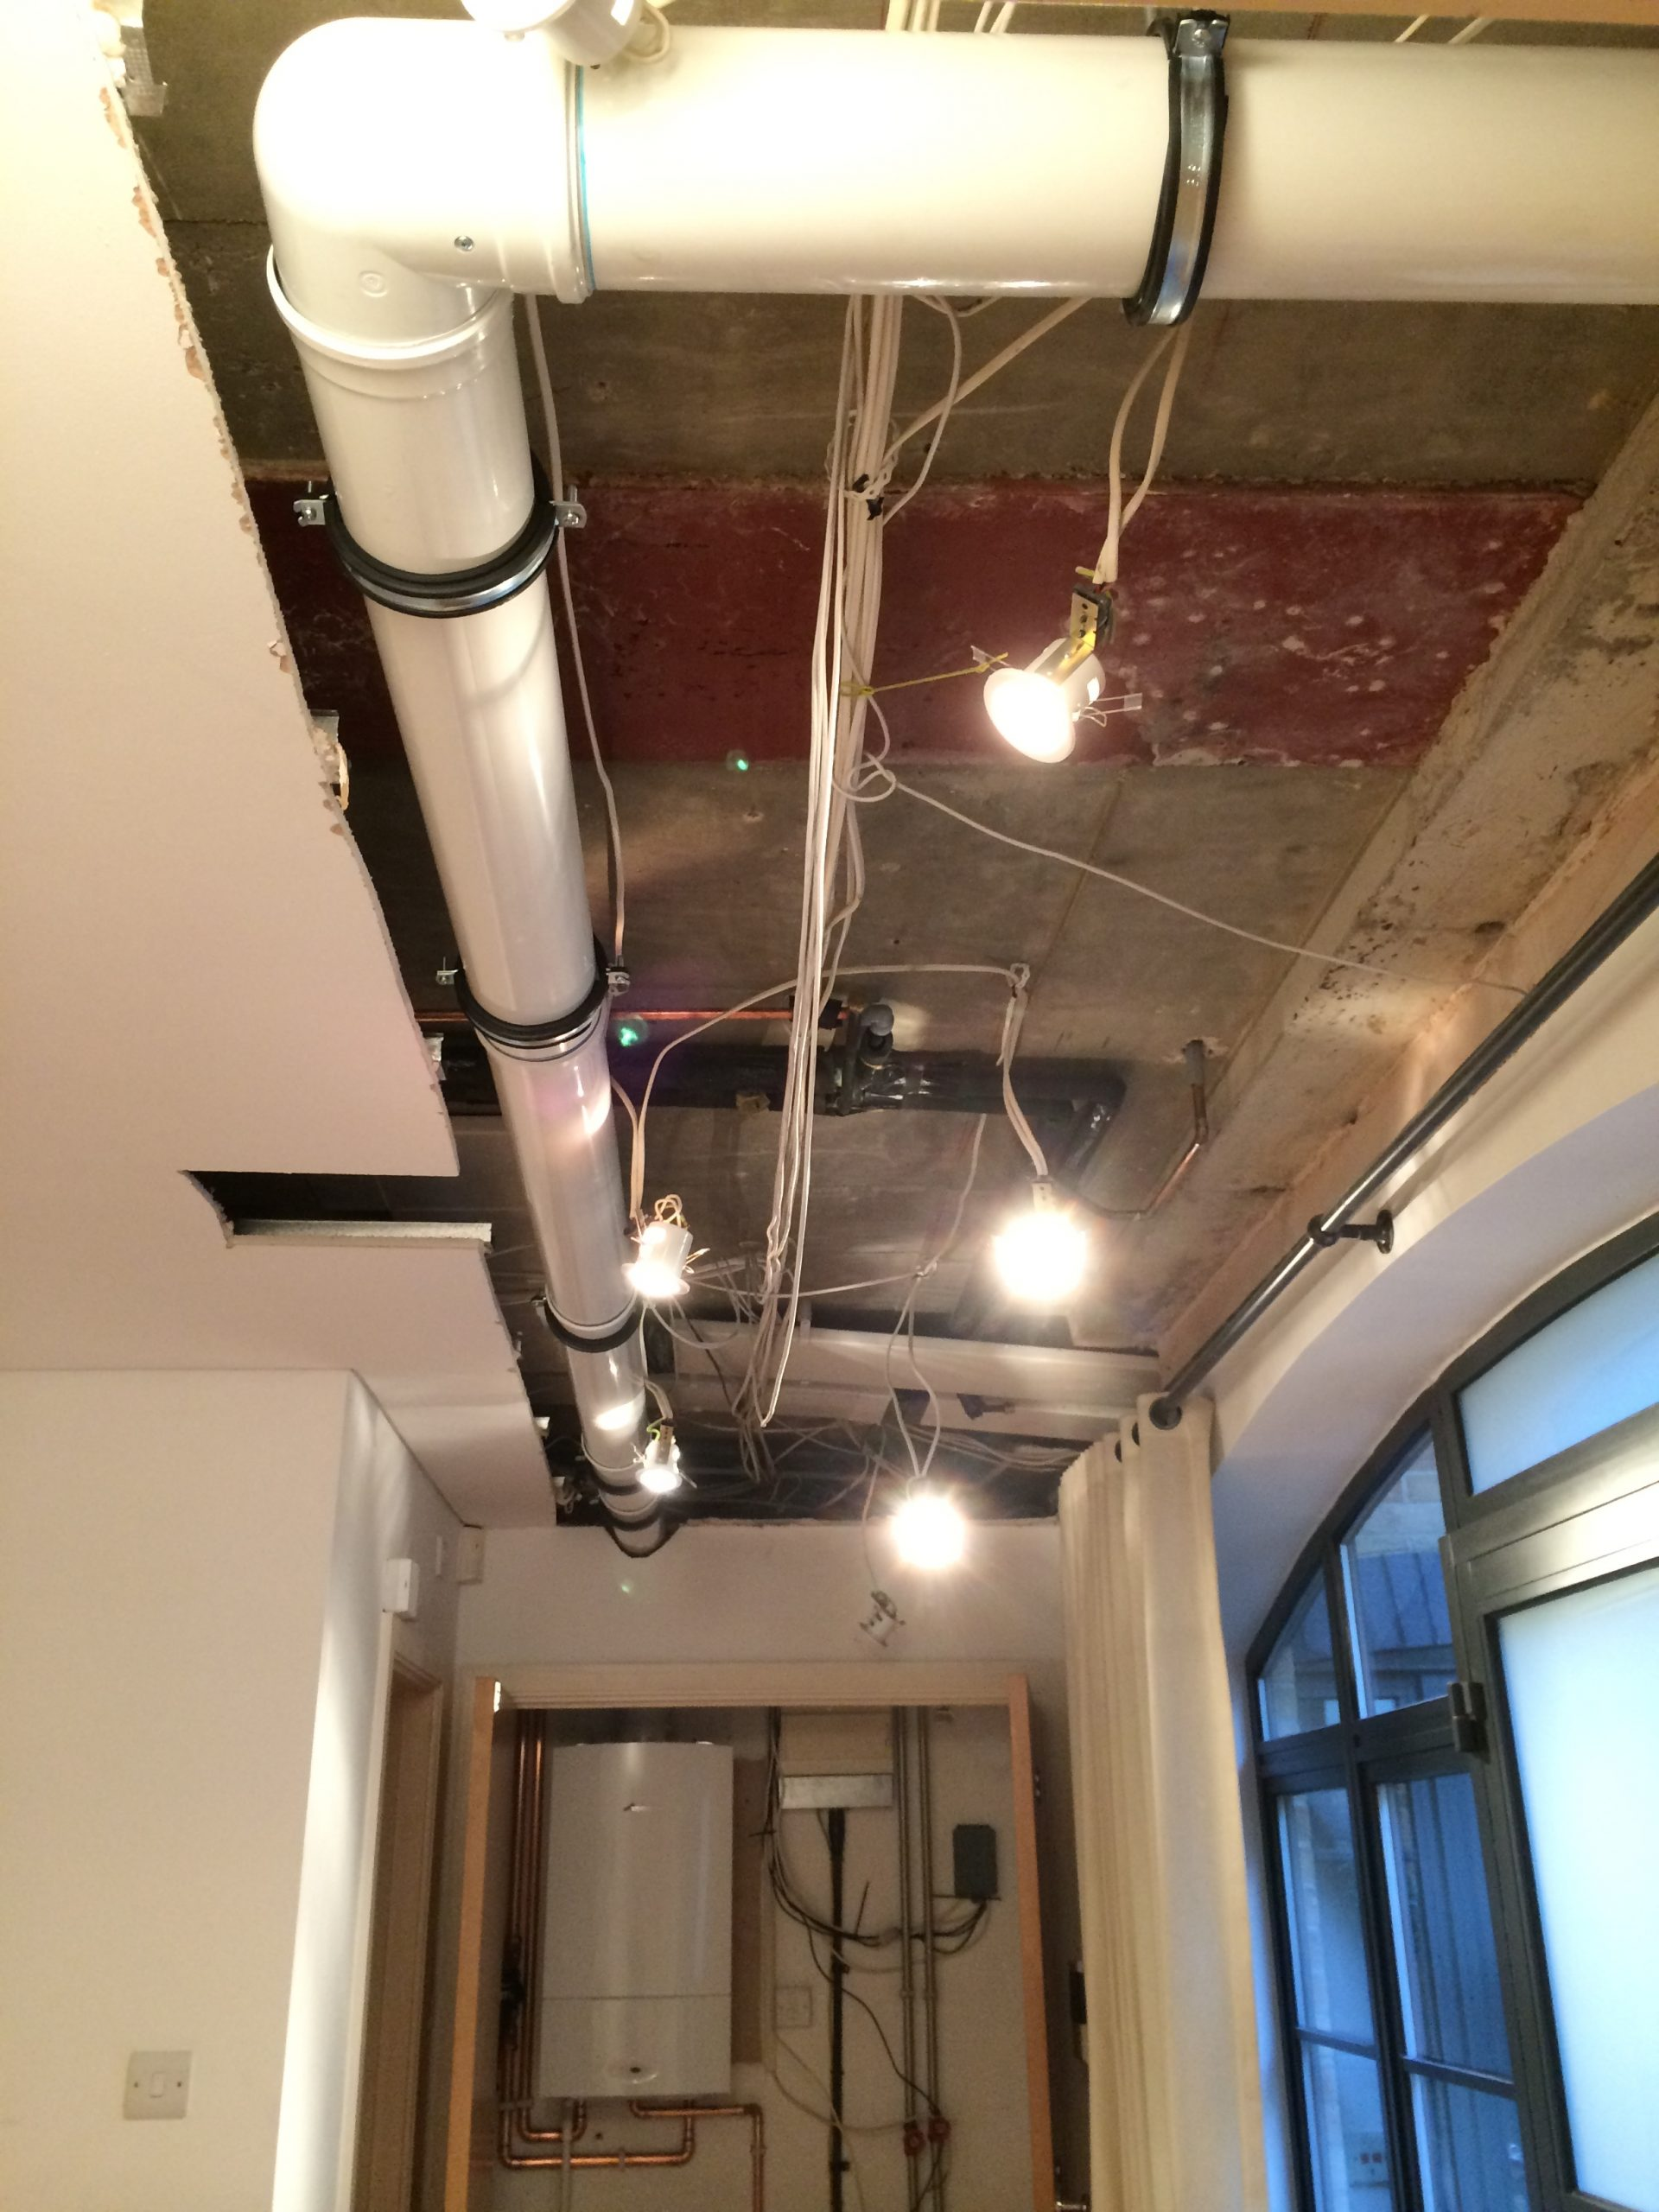 CENTRAL HEATING INSTALLATION & MAINTAINANCE